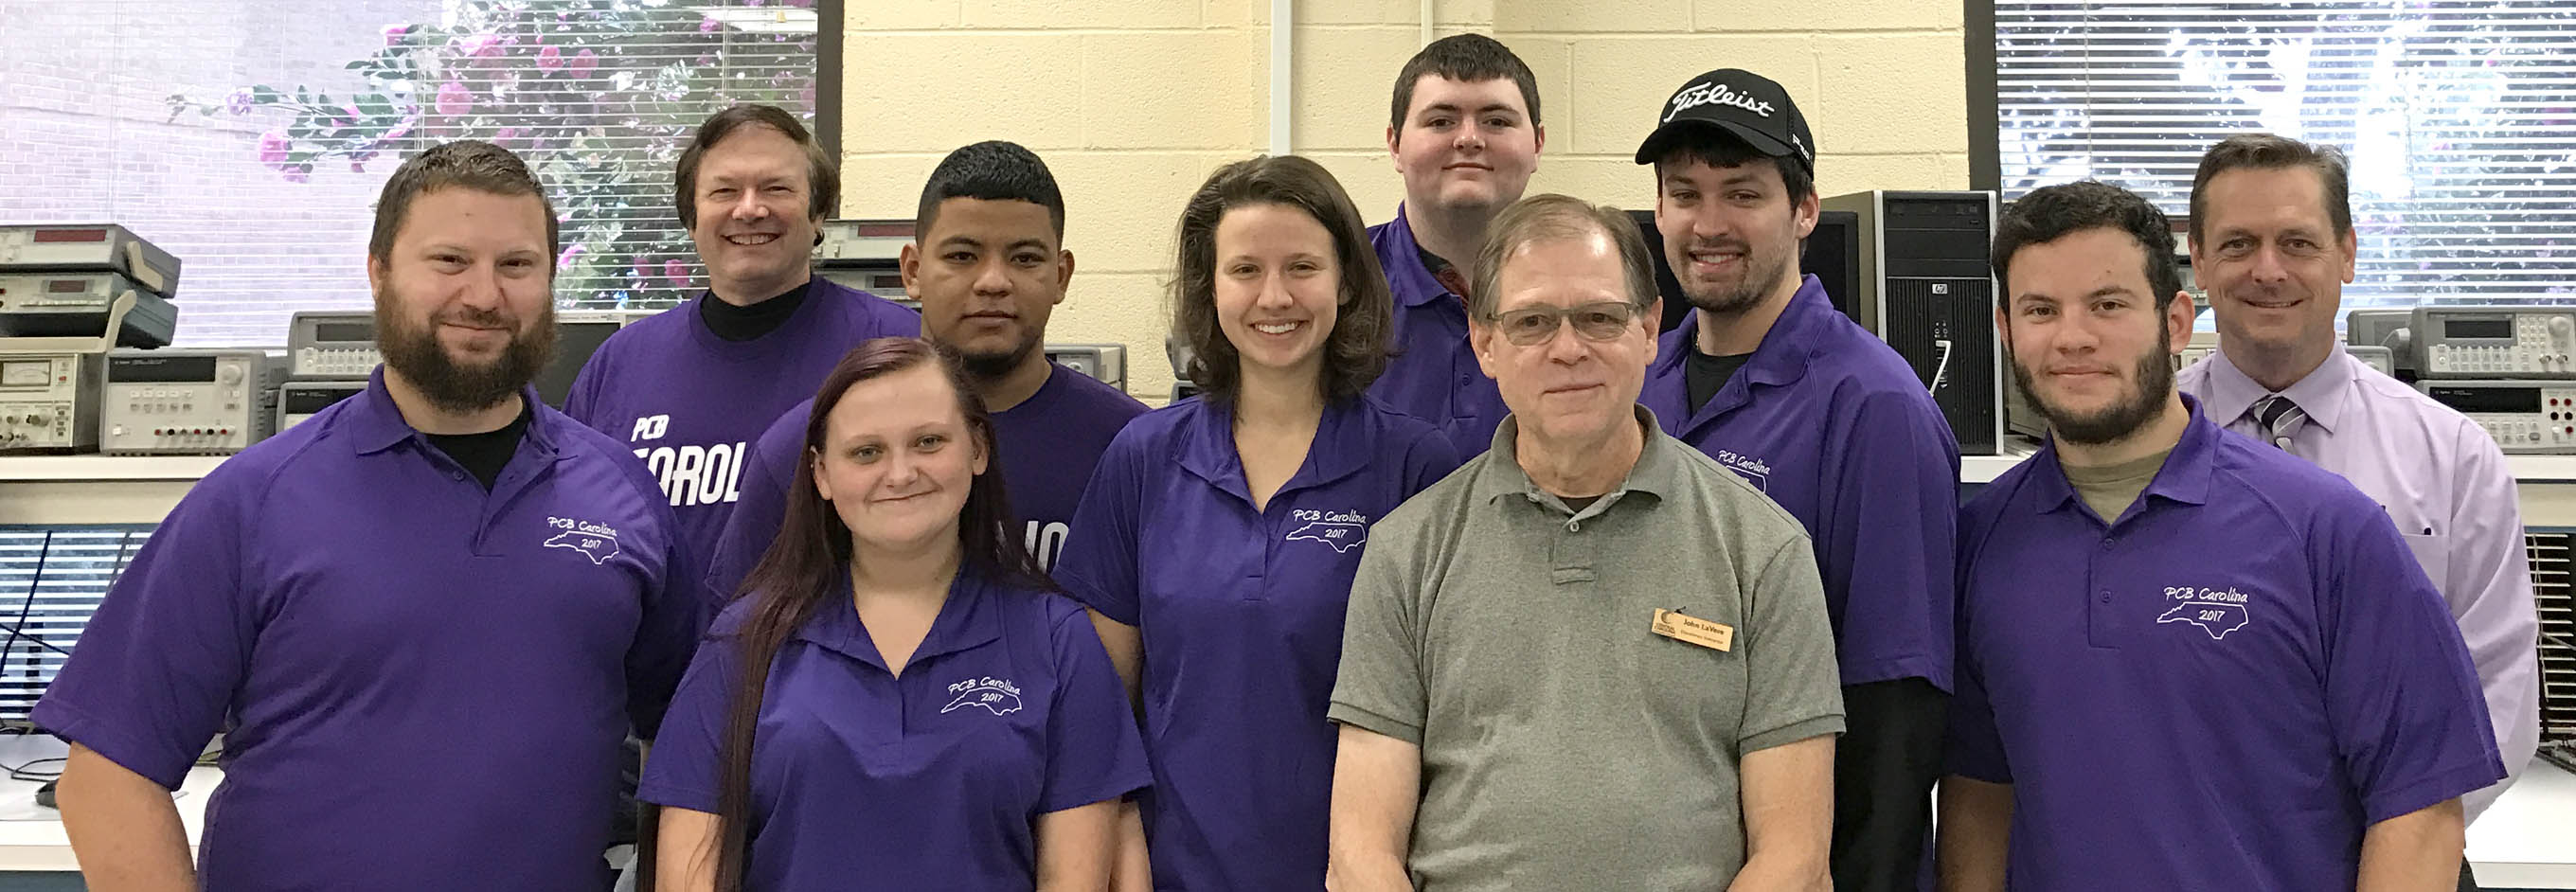 Click to enlarge,  Nine first-year students in the Central Carolina Community College Laser and Photonics Technology program served as volunteers with the PCB Carolina 2017 Electronics Trade Show and Technical Conference. Pictured are, left to right: Matthew Zannini, Robert Strickland, Brittany Cheek, Kilvet Zalavarria, Isabelle Karis, Ian Washburn, John LaVere (CCCC Harnett Electronics Instructor), Brandon Huffman, Cameron Wiedholz, and Dr. Jon Matthews (CCCC Harnett Provost). Volunteer not pictured is Jamie Turner.